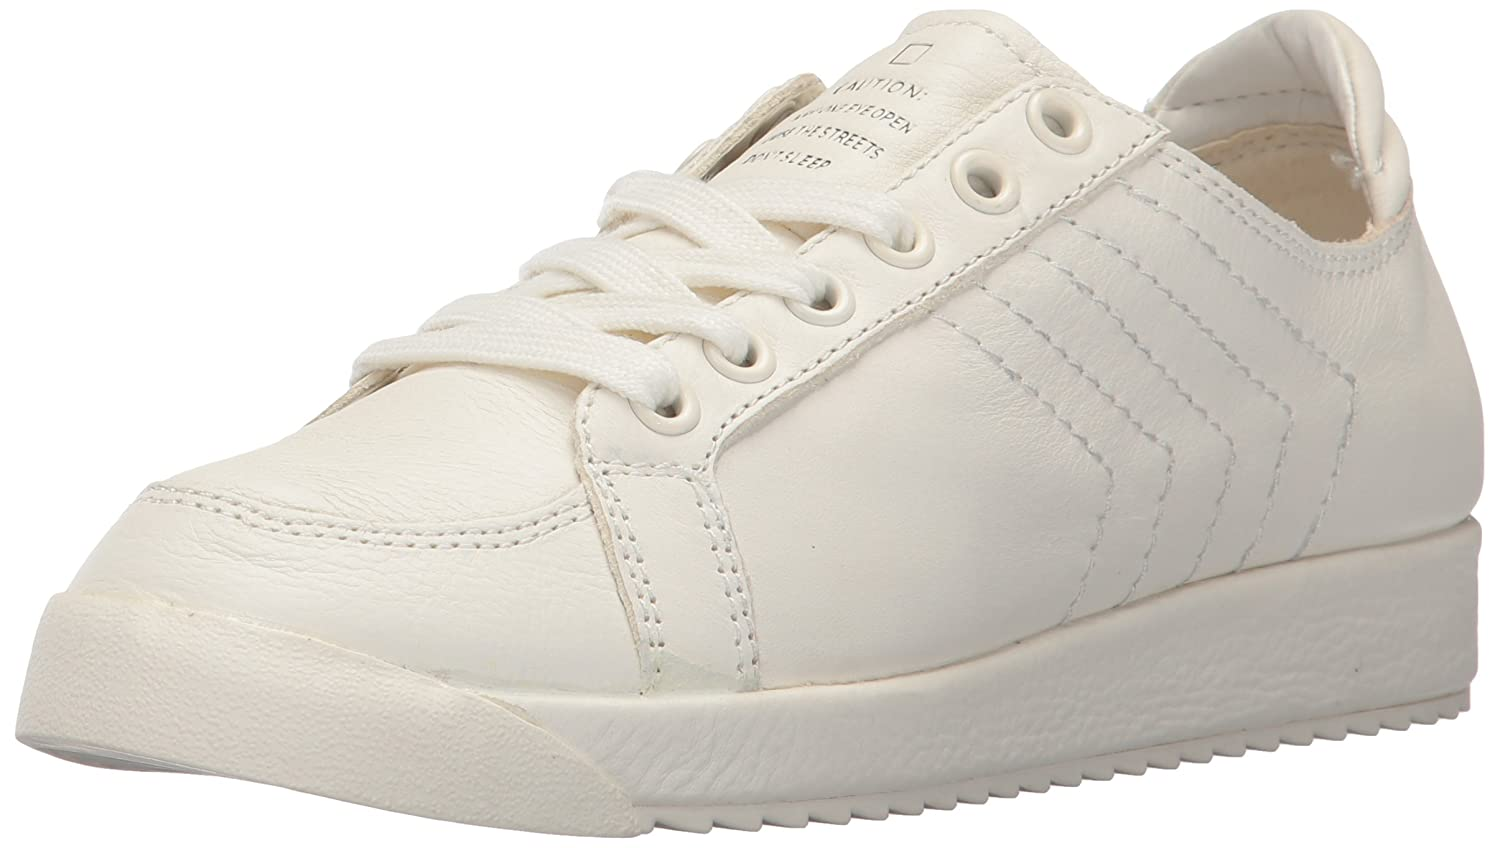 Dolce Vita Women's Sage Sneaker B071G2HD7K 11 B(M) US|White Leather